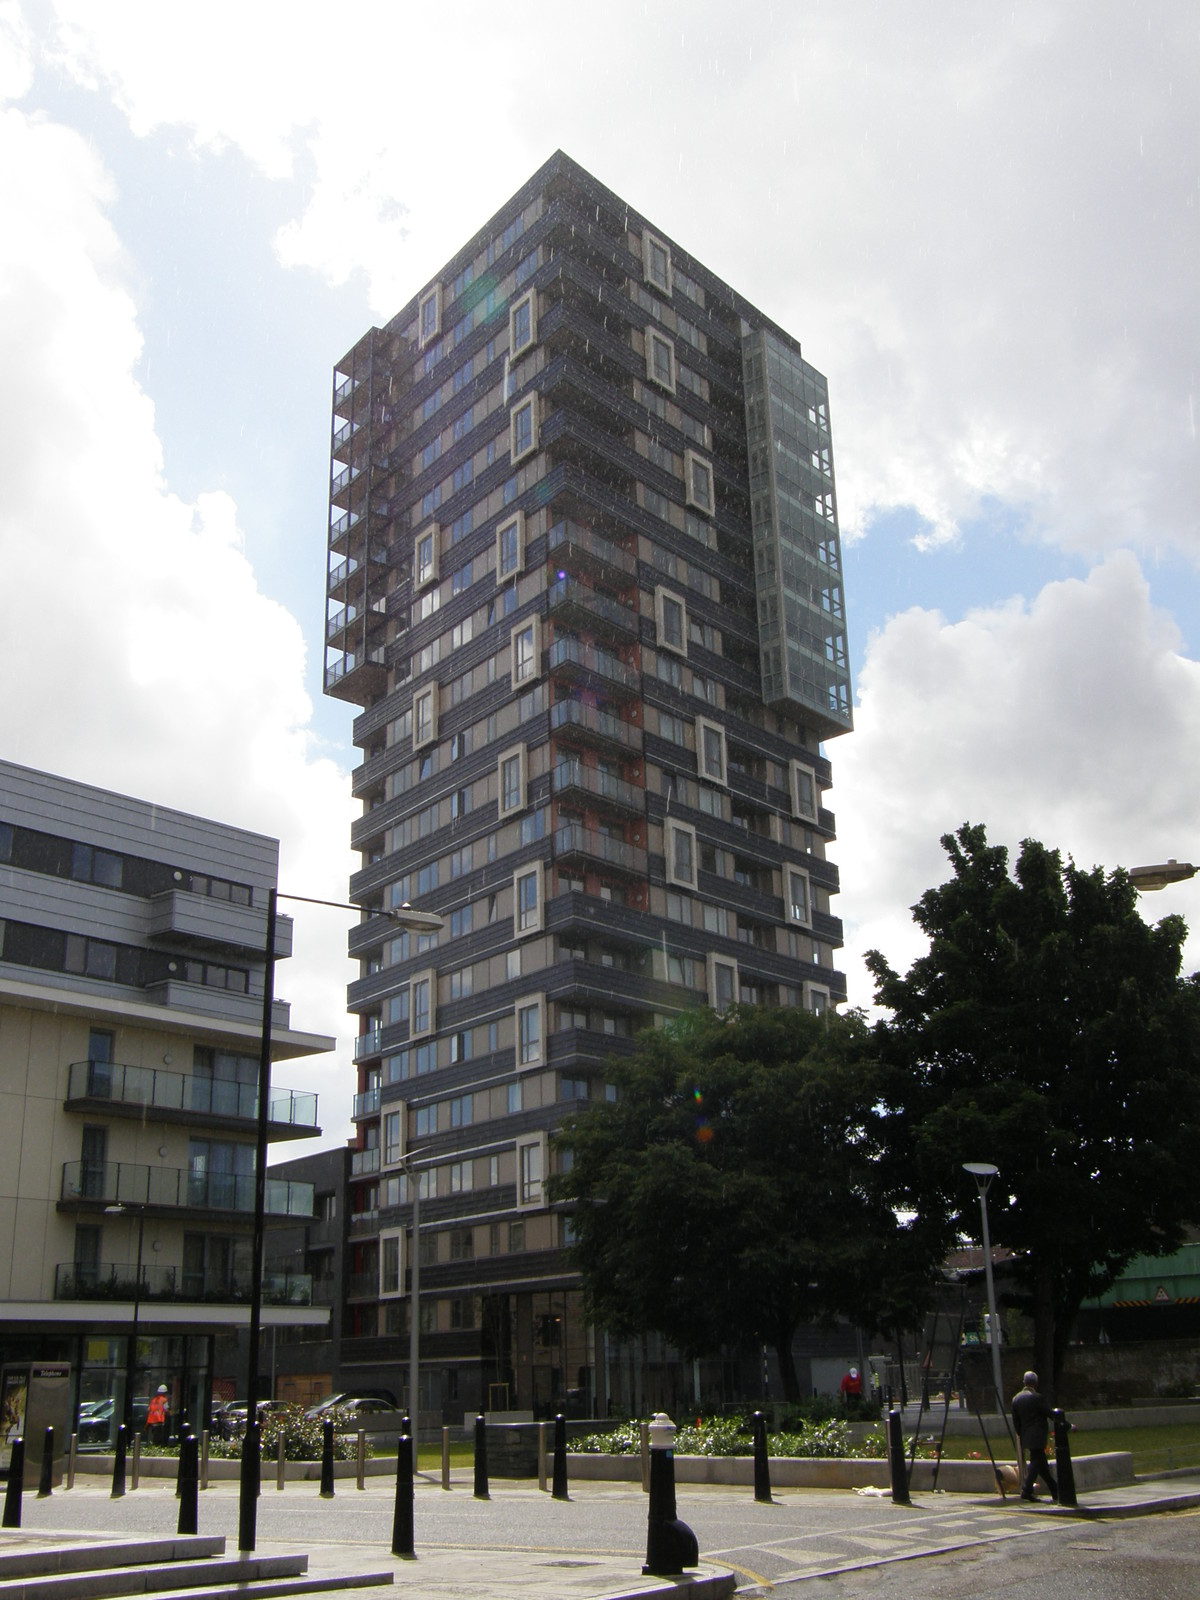 A tower block near Shadwell